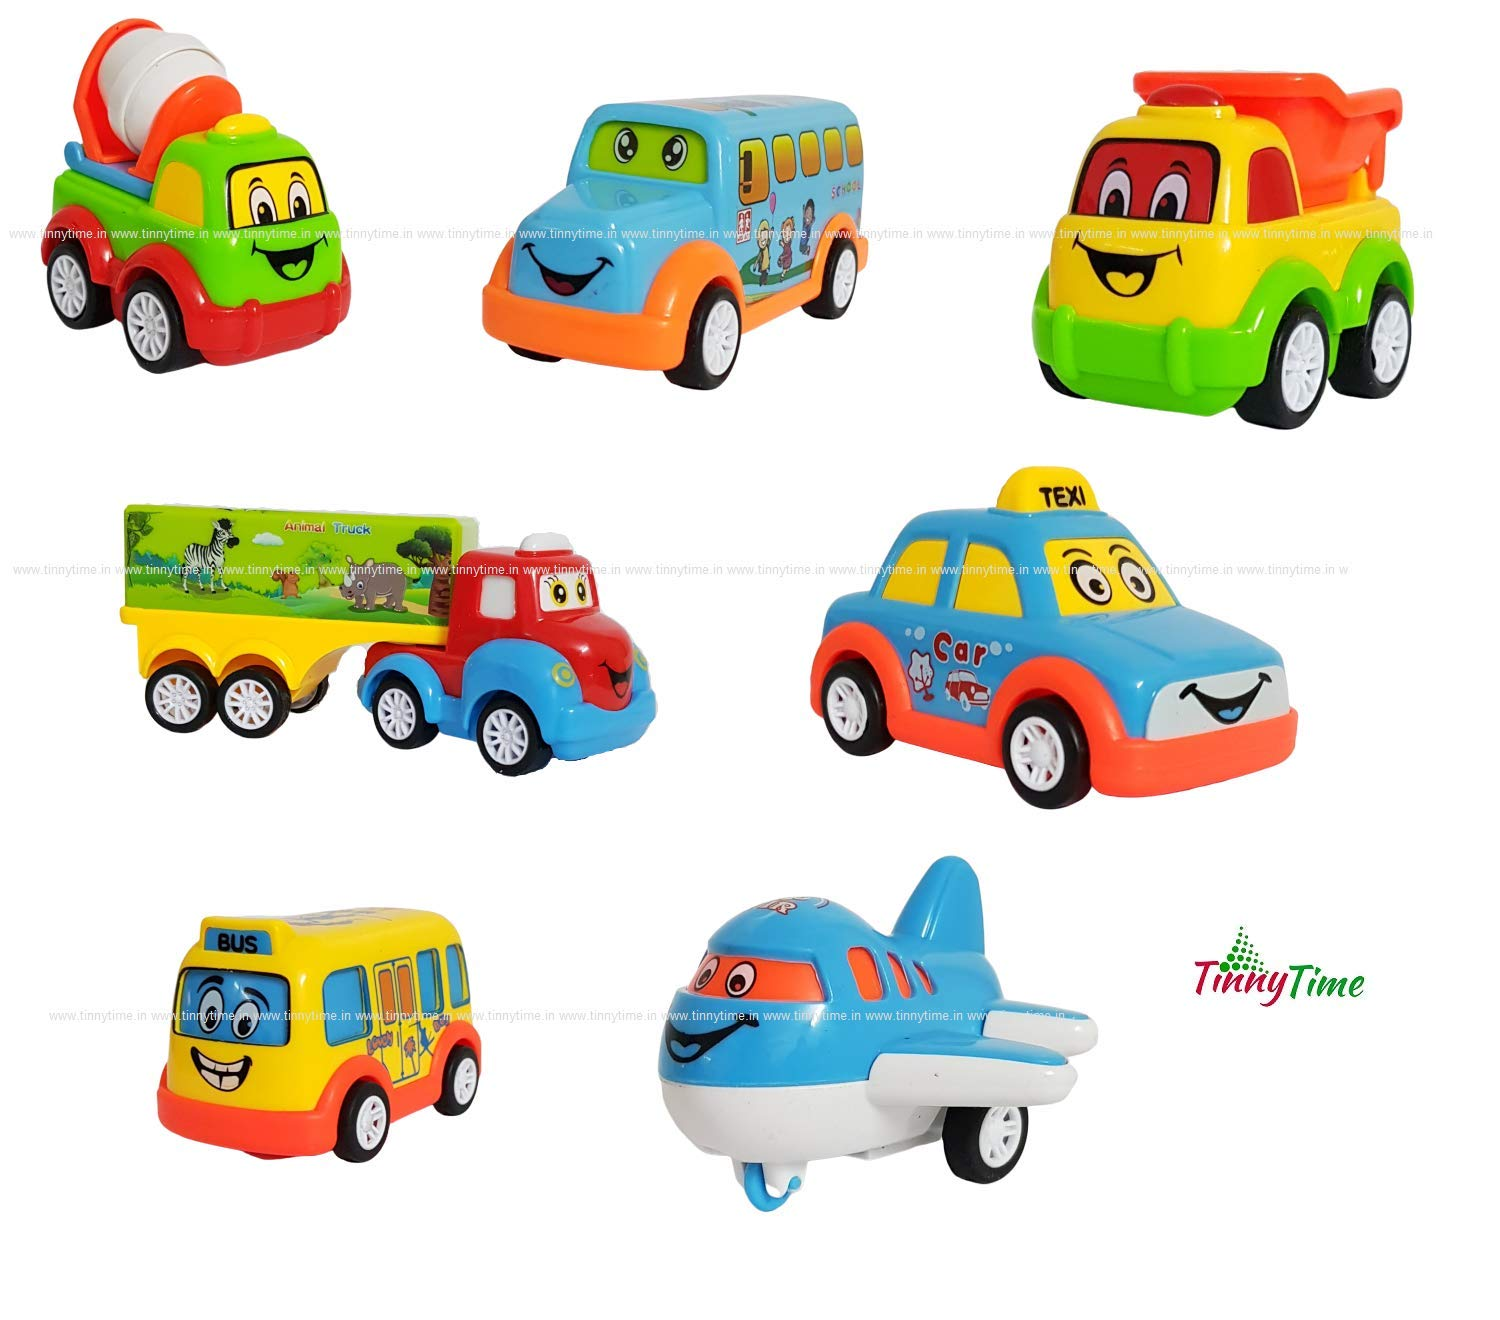 Buy Tinny Time Unbreakable Pull Back Car Truck Toy Set For Kids